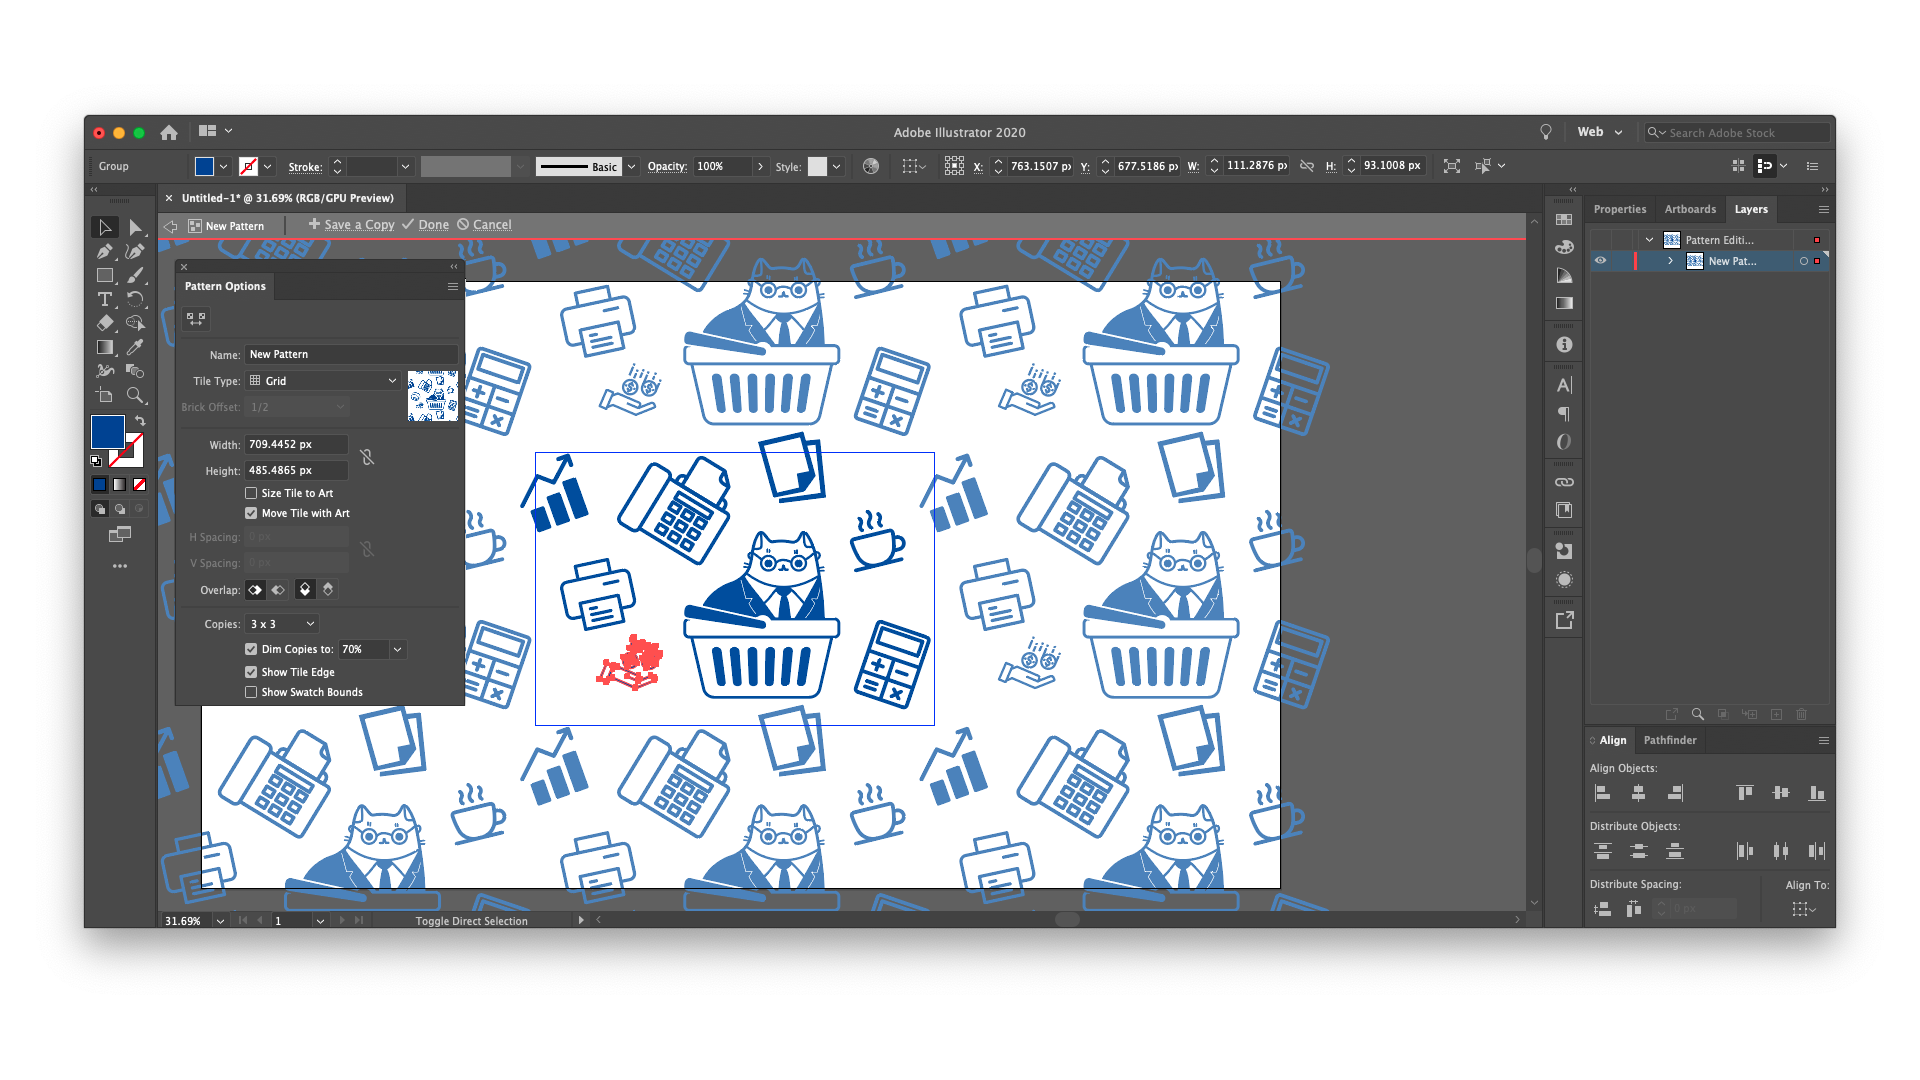 How to make pattern in Illustrator: insert Noun Project icons, select all of them on your artboard, and go to Object > Pattern > Make. However your cluster of icons is arranged, it will now make a repeating pattern stretching across your artboard.